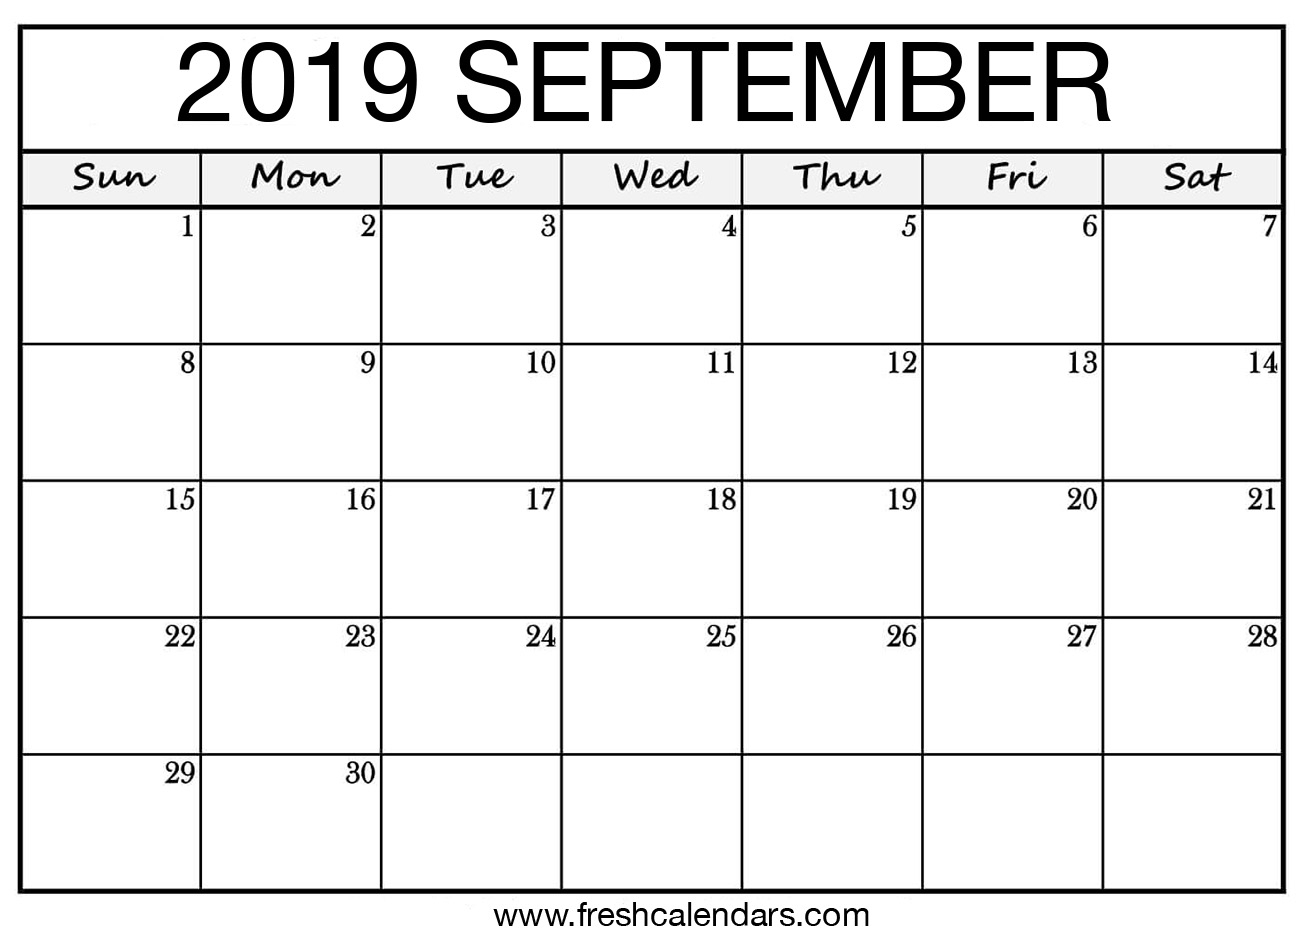 September 2019 Calendar Printable - Fresh Calendars inside Blank September Calendar Printable